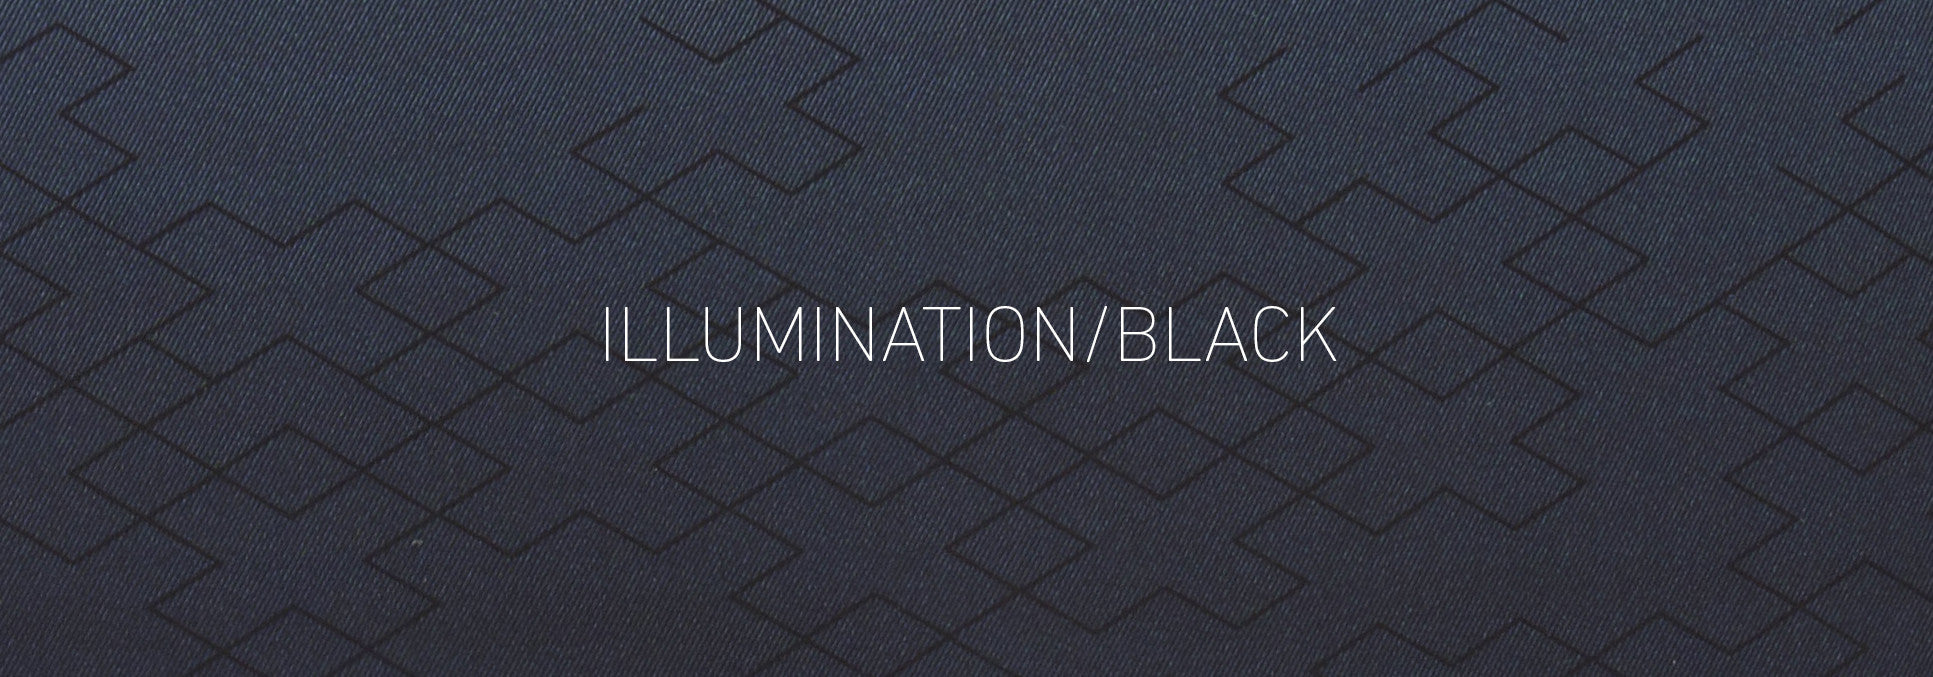 Illumination/Black